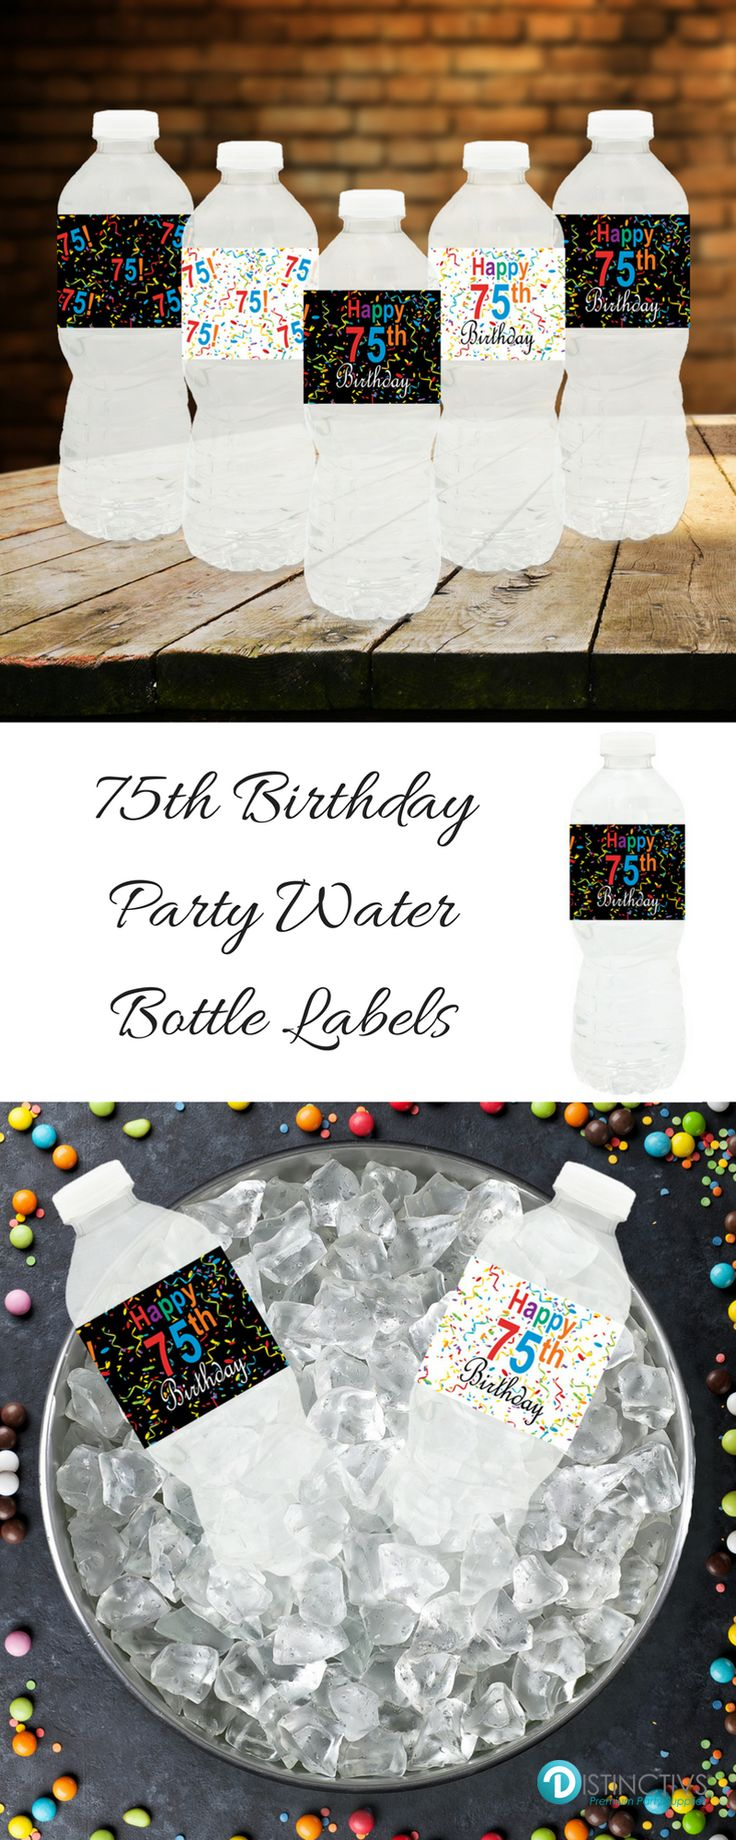 50 Best 75th Birthday Party Ideas Images By Distinctivs On